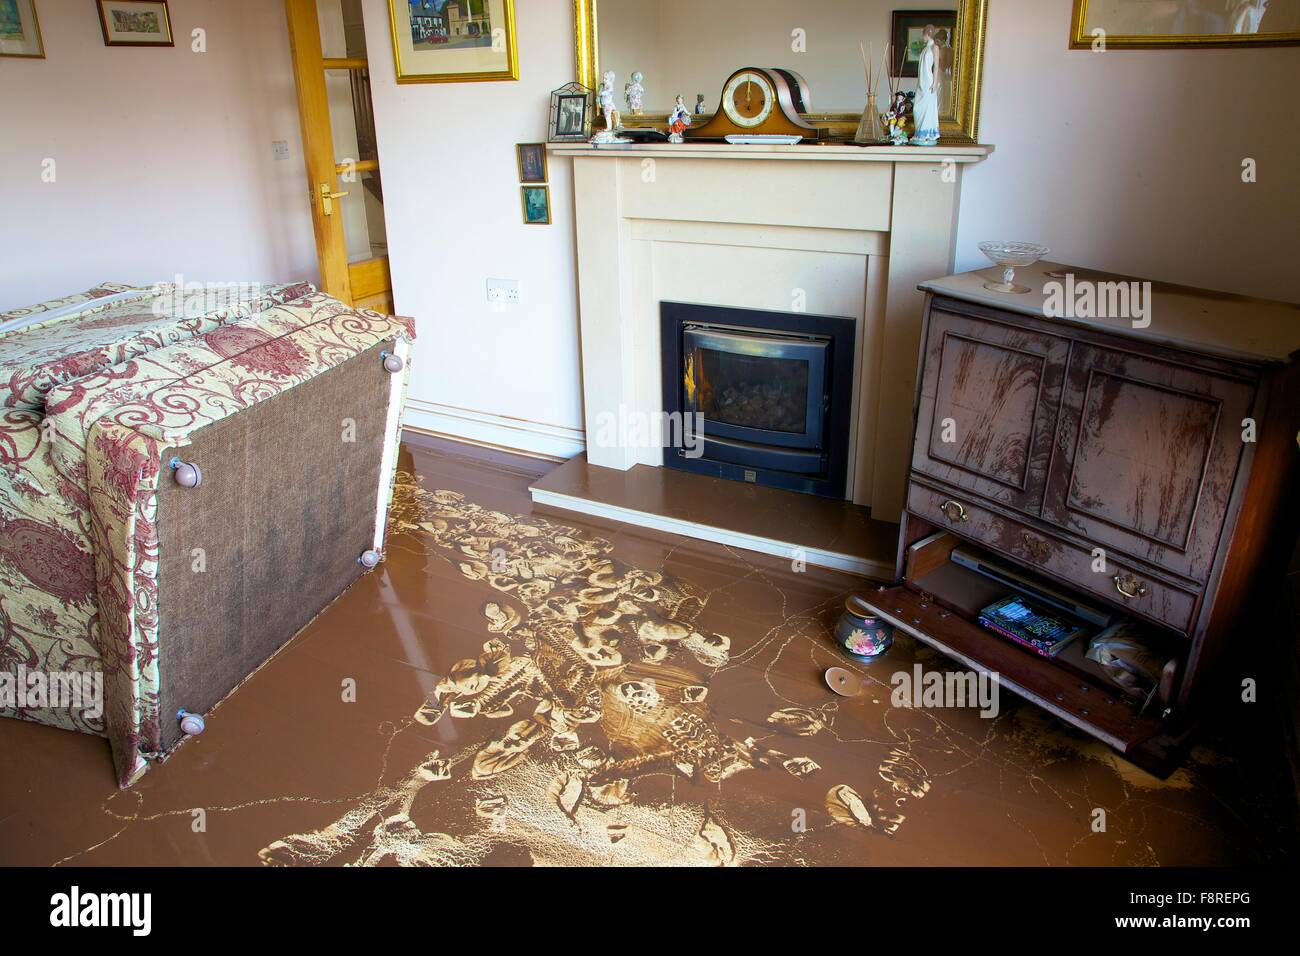 Carlisle Floods. December 2015. Flood damaged furniture in a house. Storm Desmond caused severe flooding in Carlisle. - Stock Image